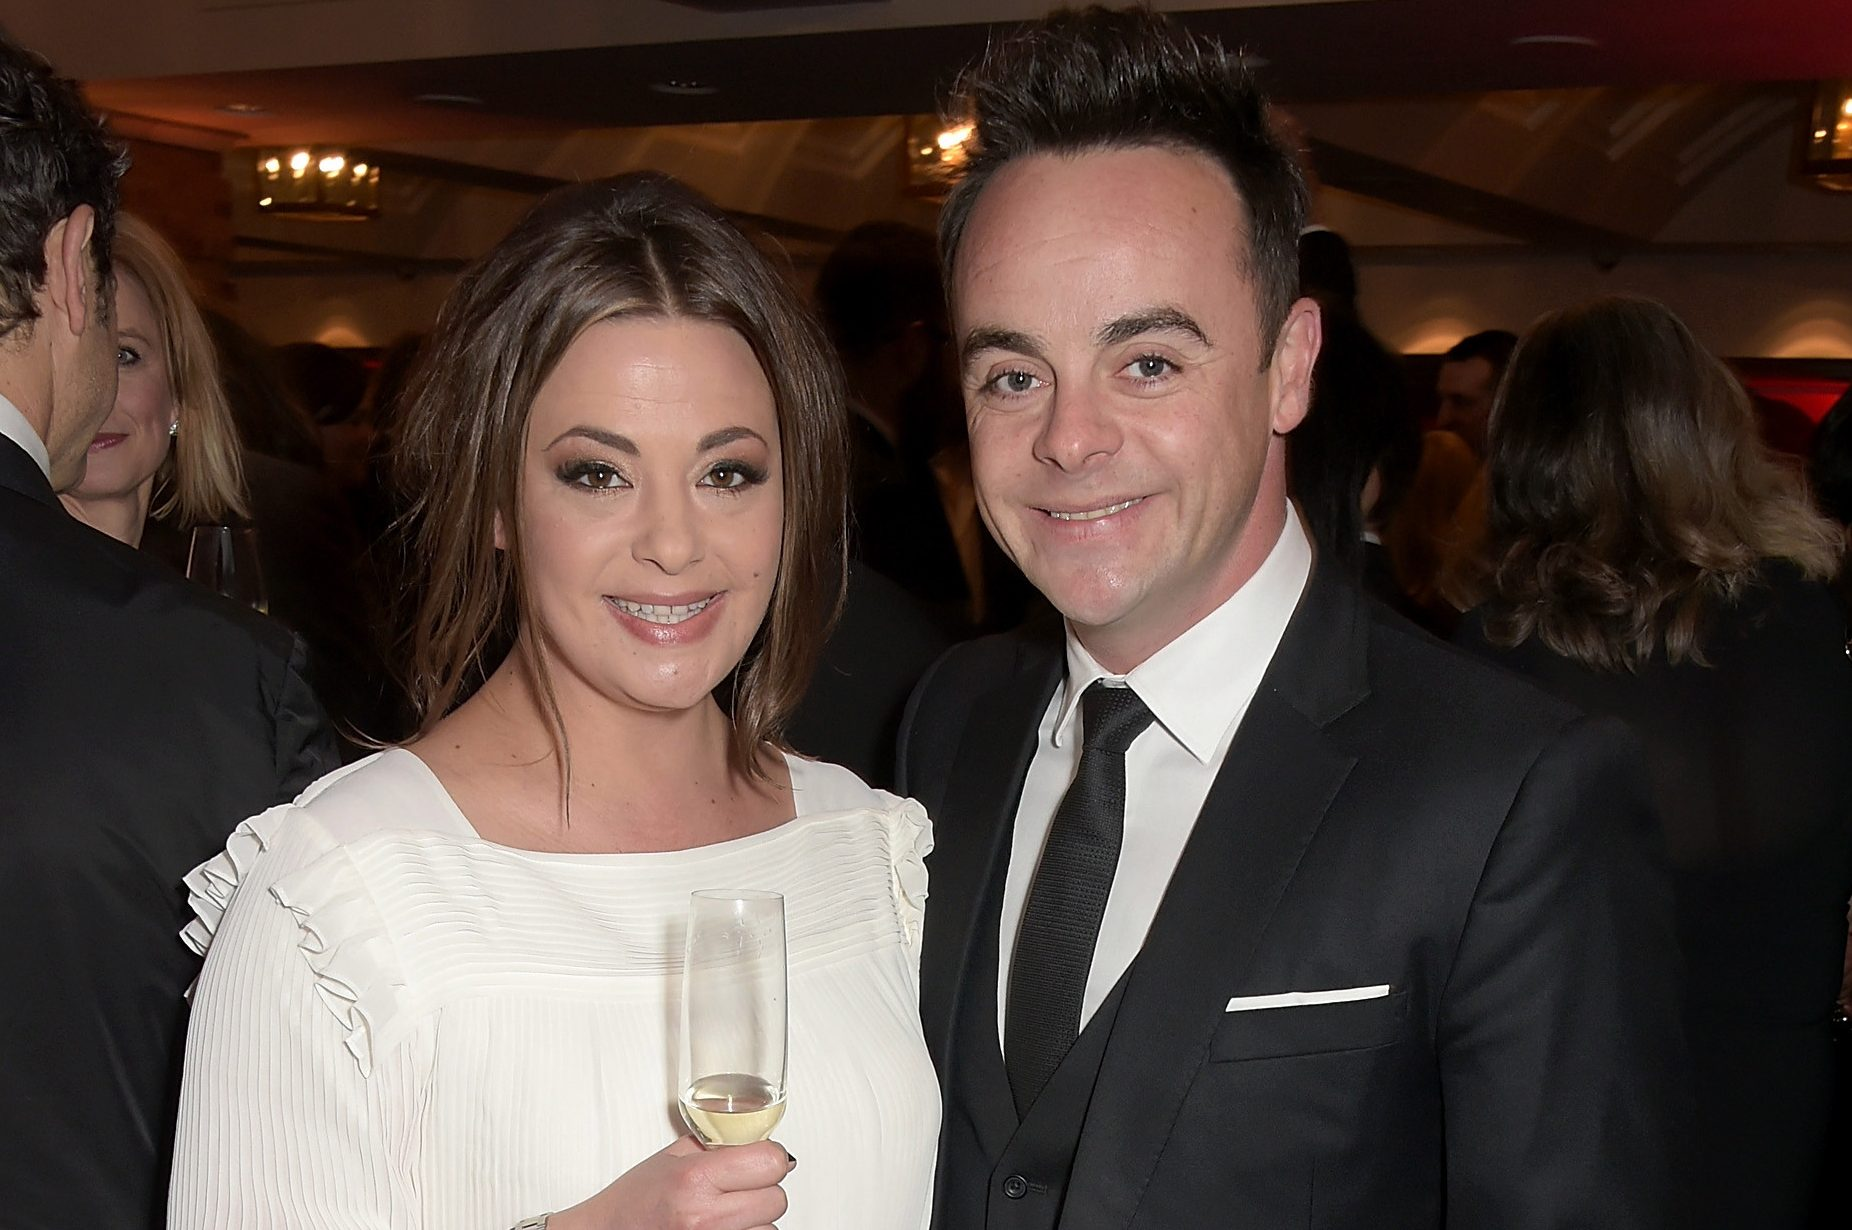 Lisa Armstrong likes tweet about people 'finding their way back to each other' months after Ant McPartlin divorce